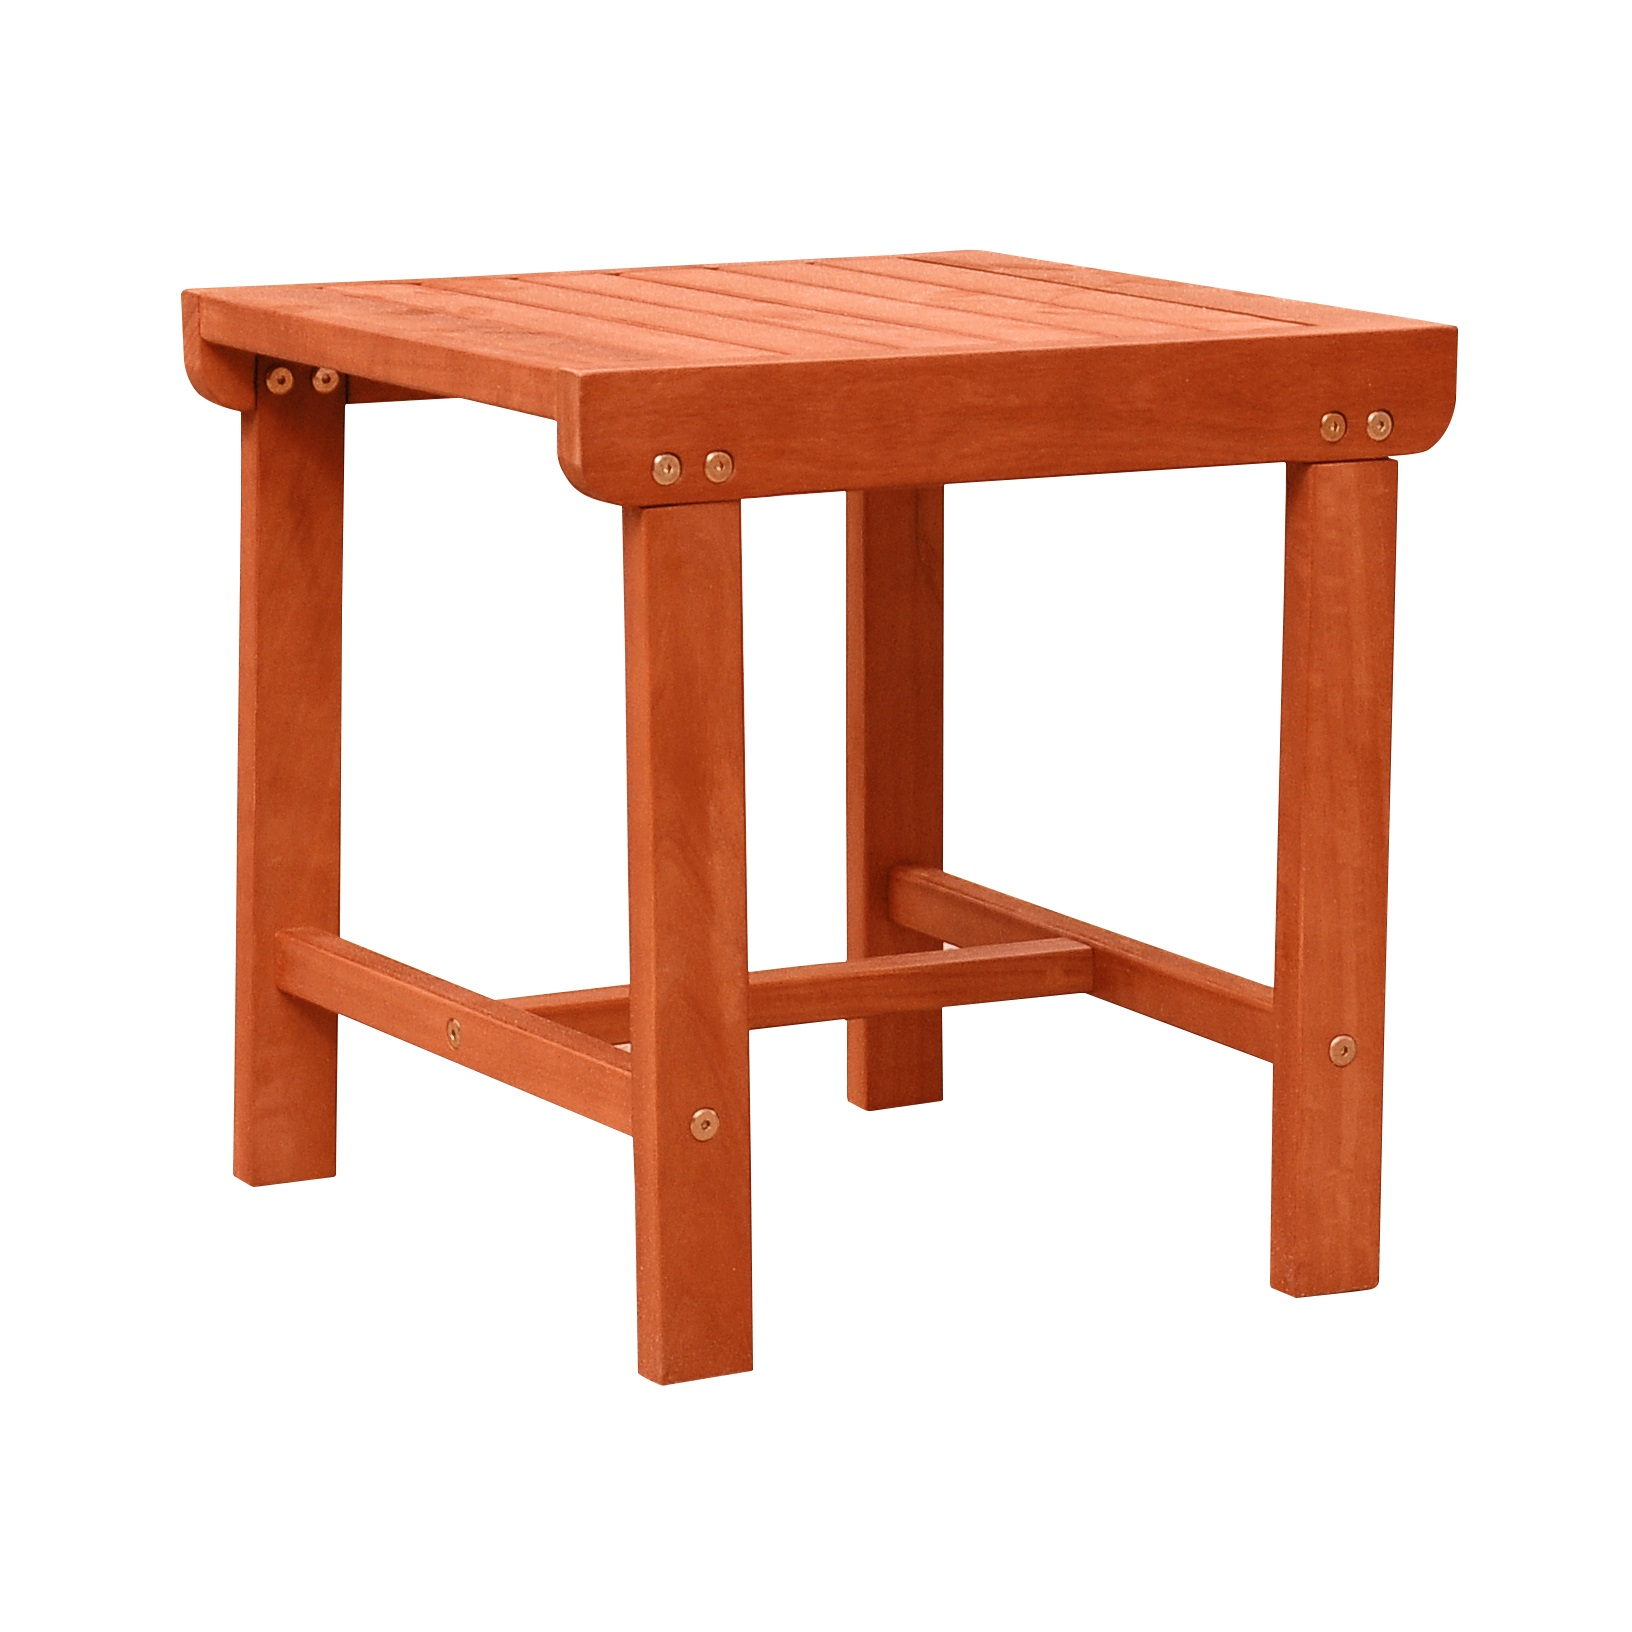 Malibu Outdoor Patio Wood Side Table